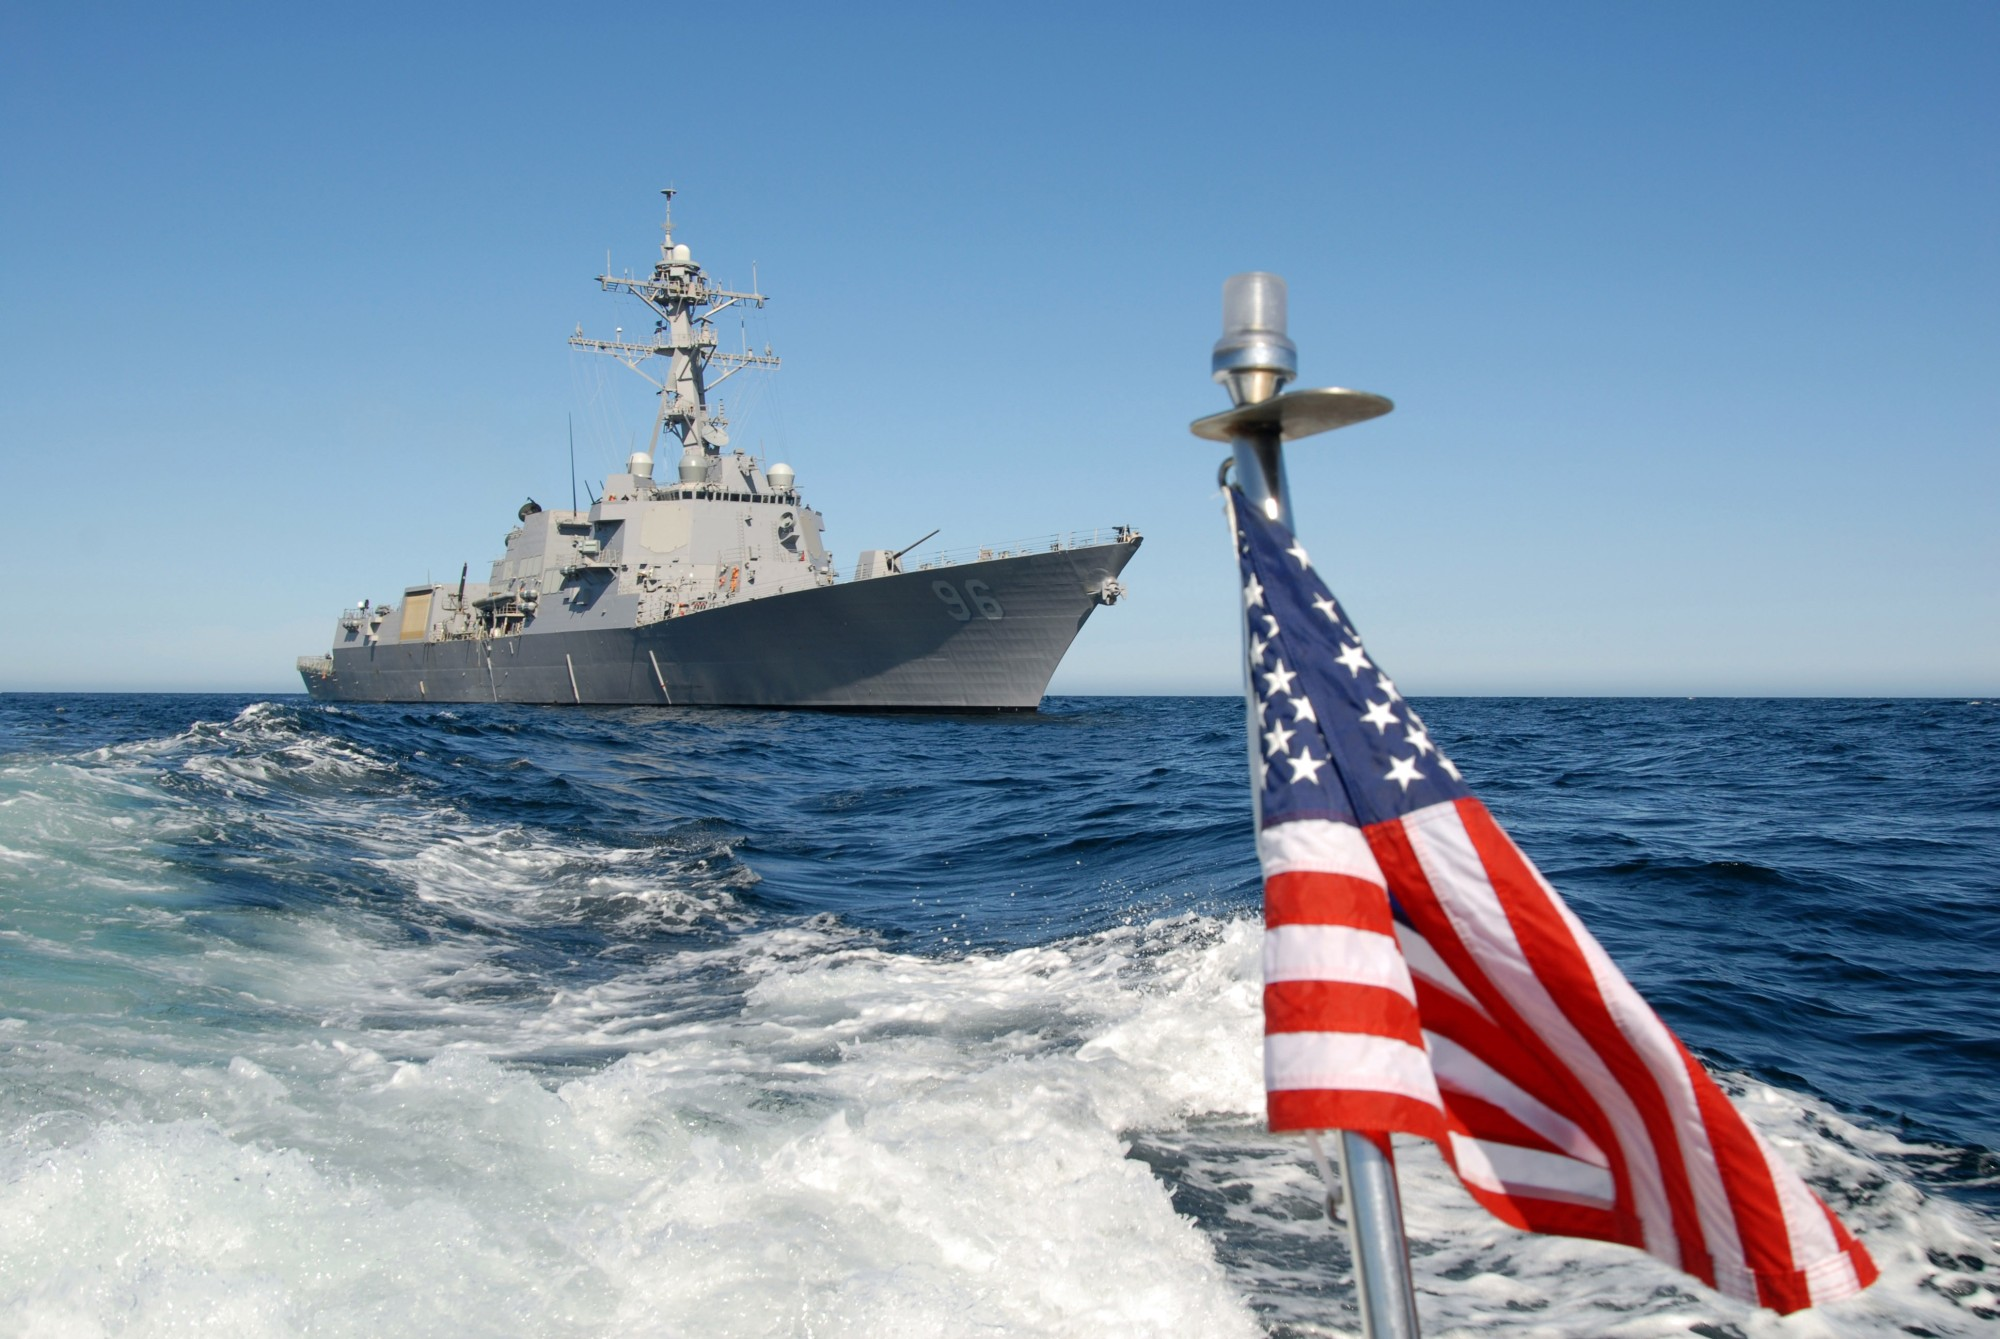 ddg navy powerstar ups